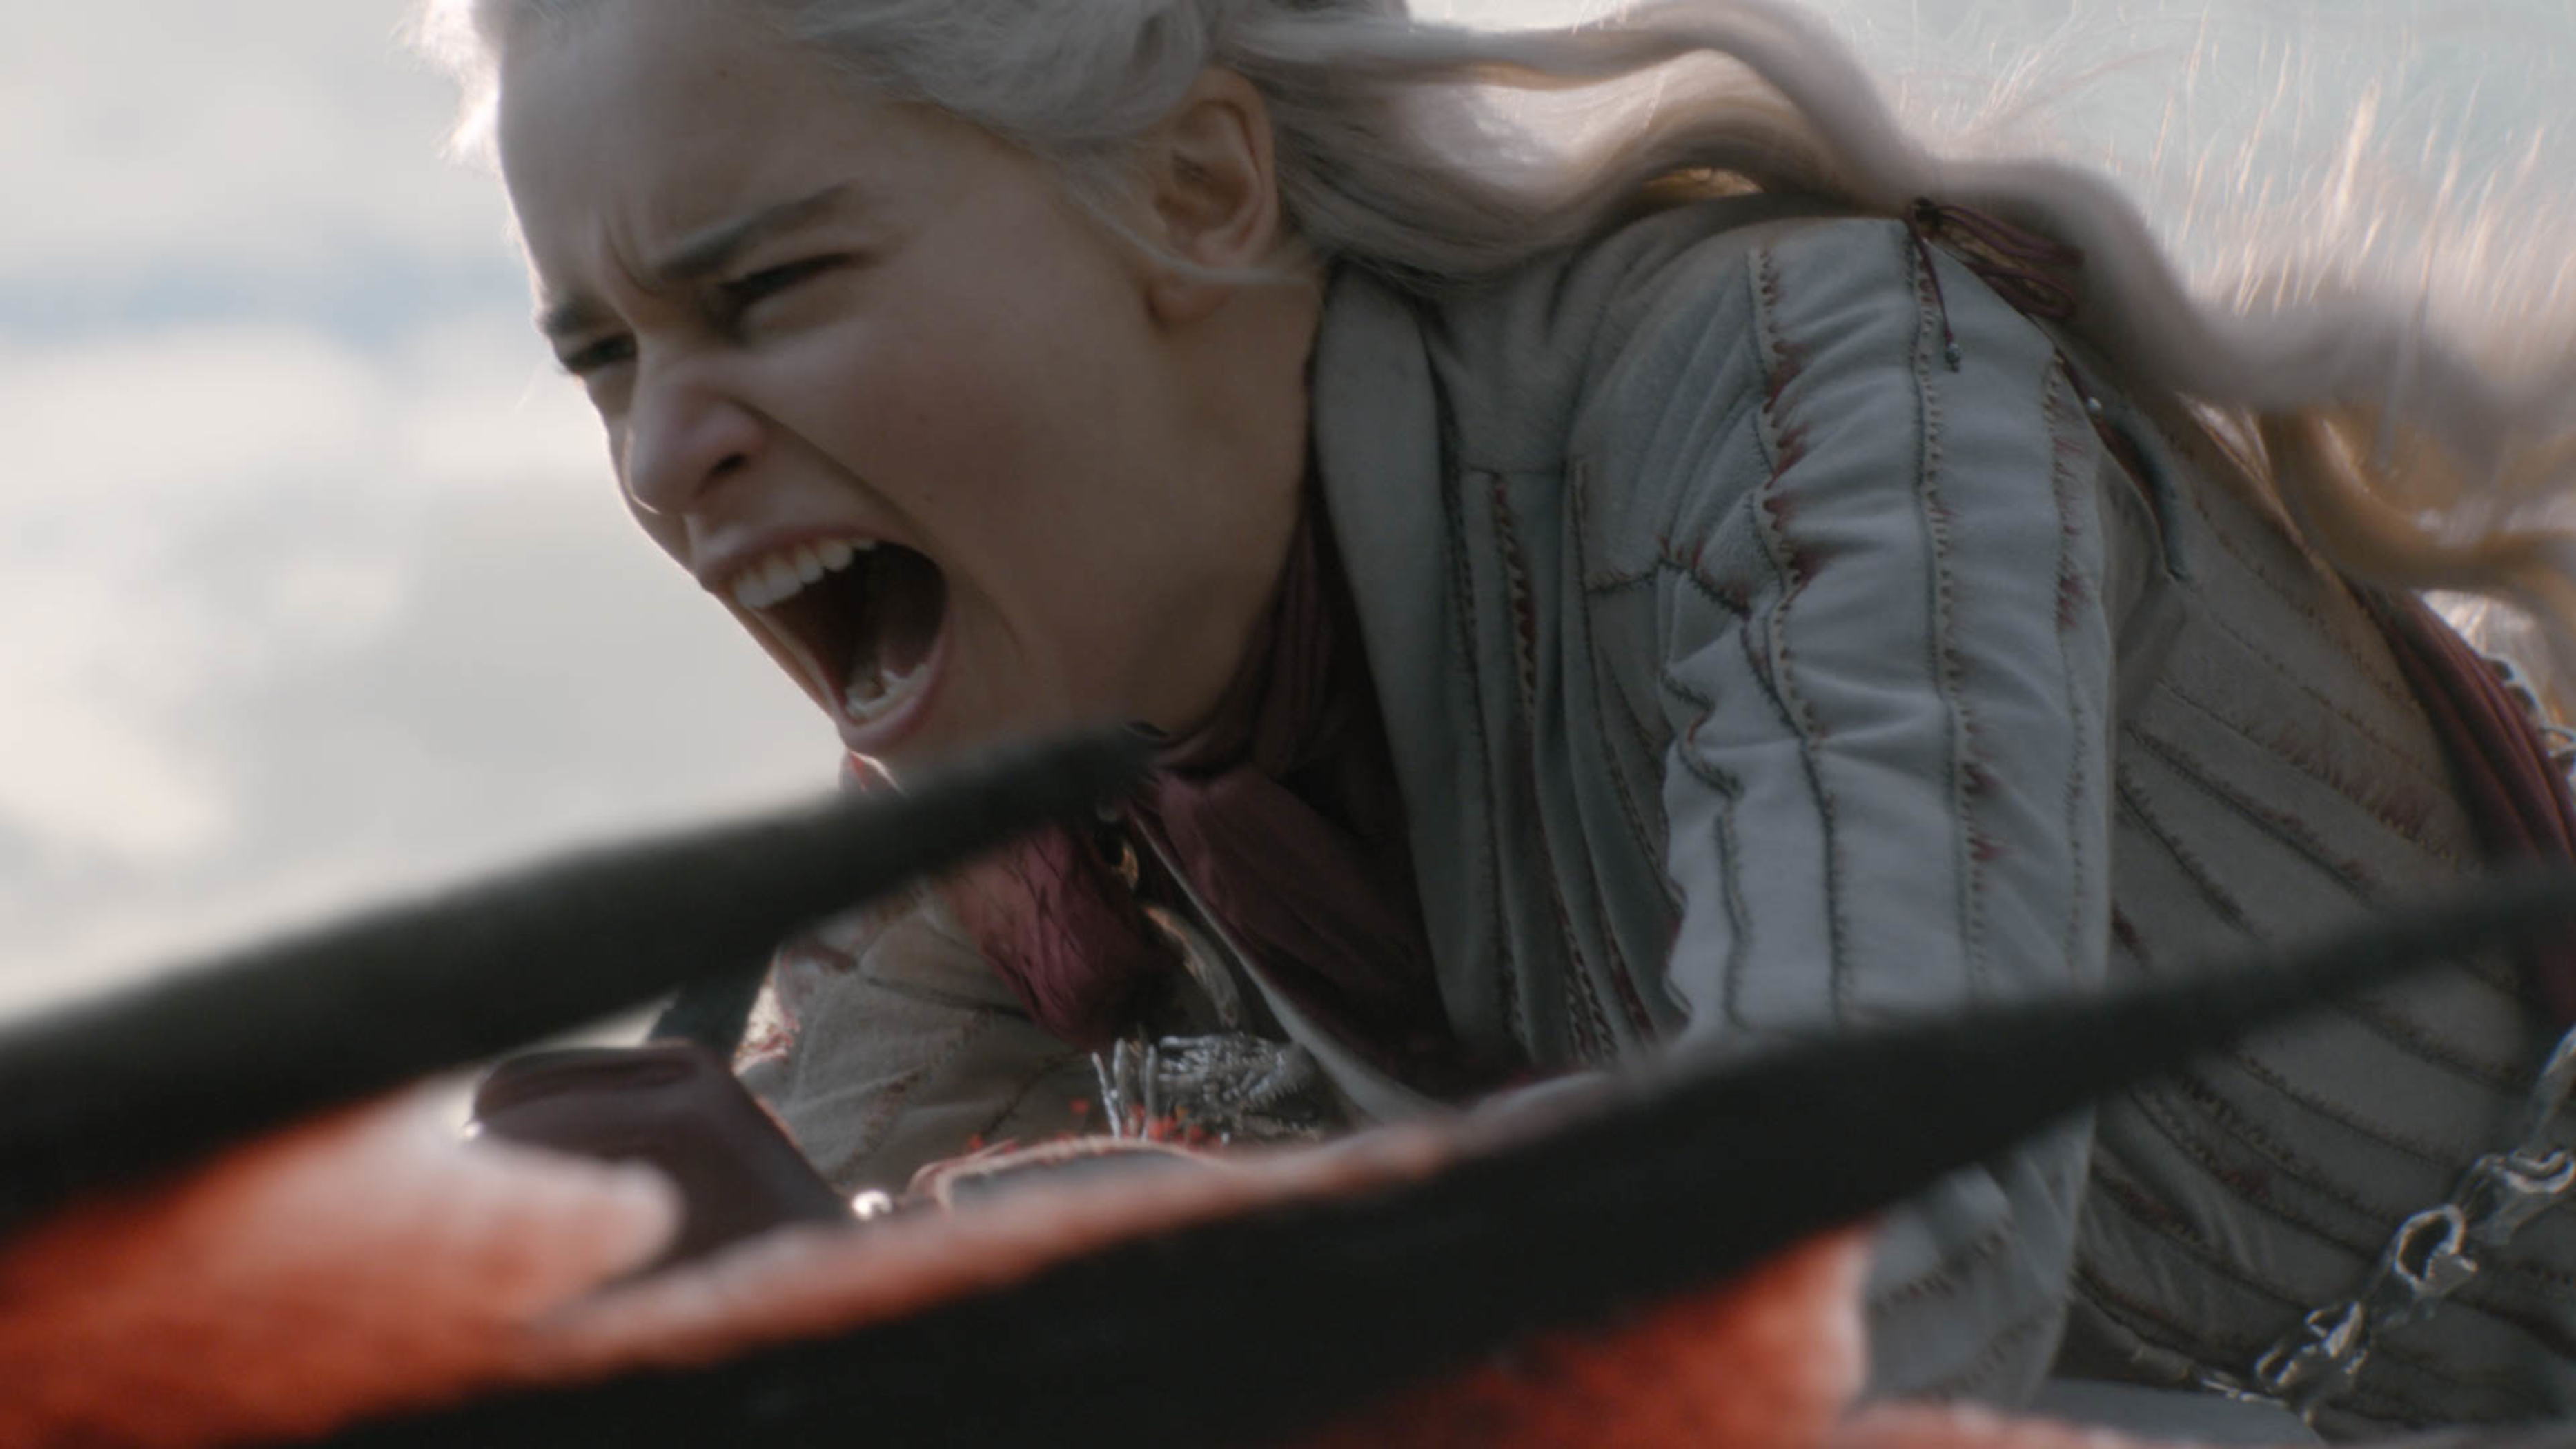 Emilia Clarke's reaction to the Game of Thrones season 8 finale confirms our worst fears